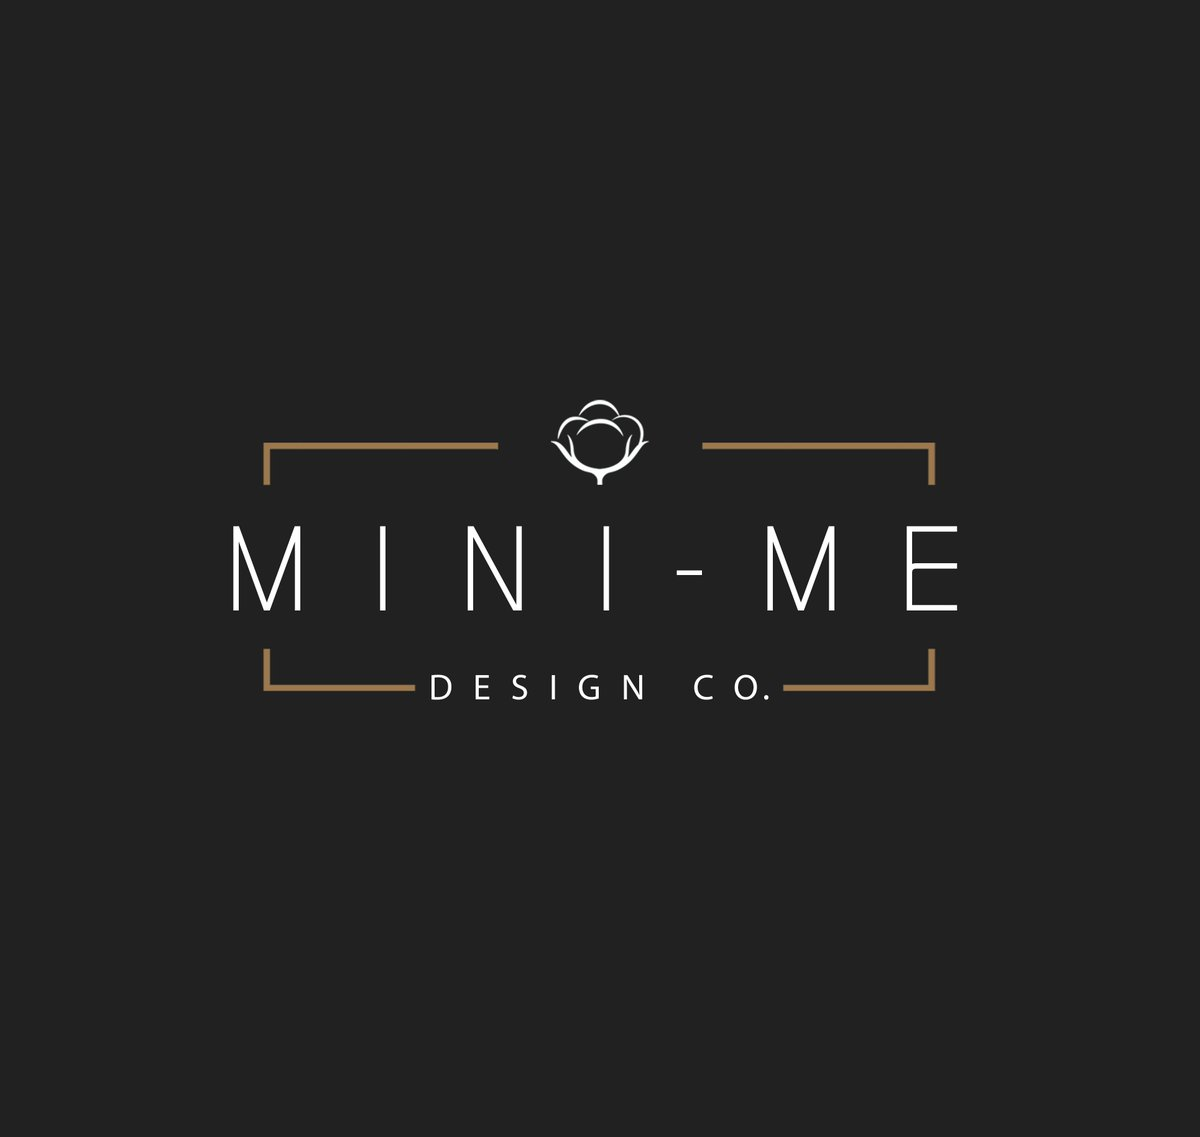 Fiverr Blueradiumdesig Design Unique And Outstanding Logo For Your Websites Lettermark Monogram Minimal Minimalist